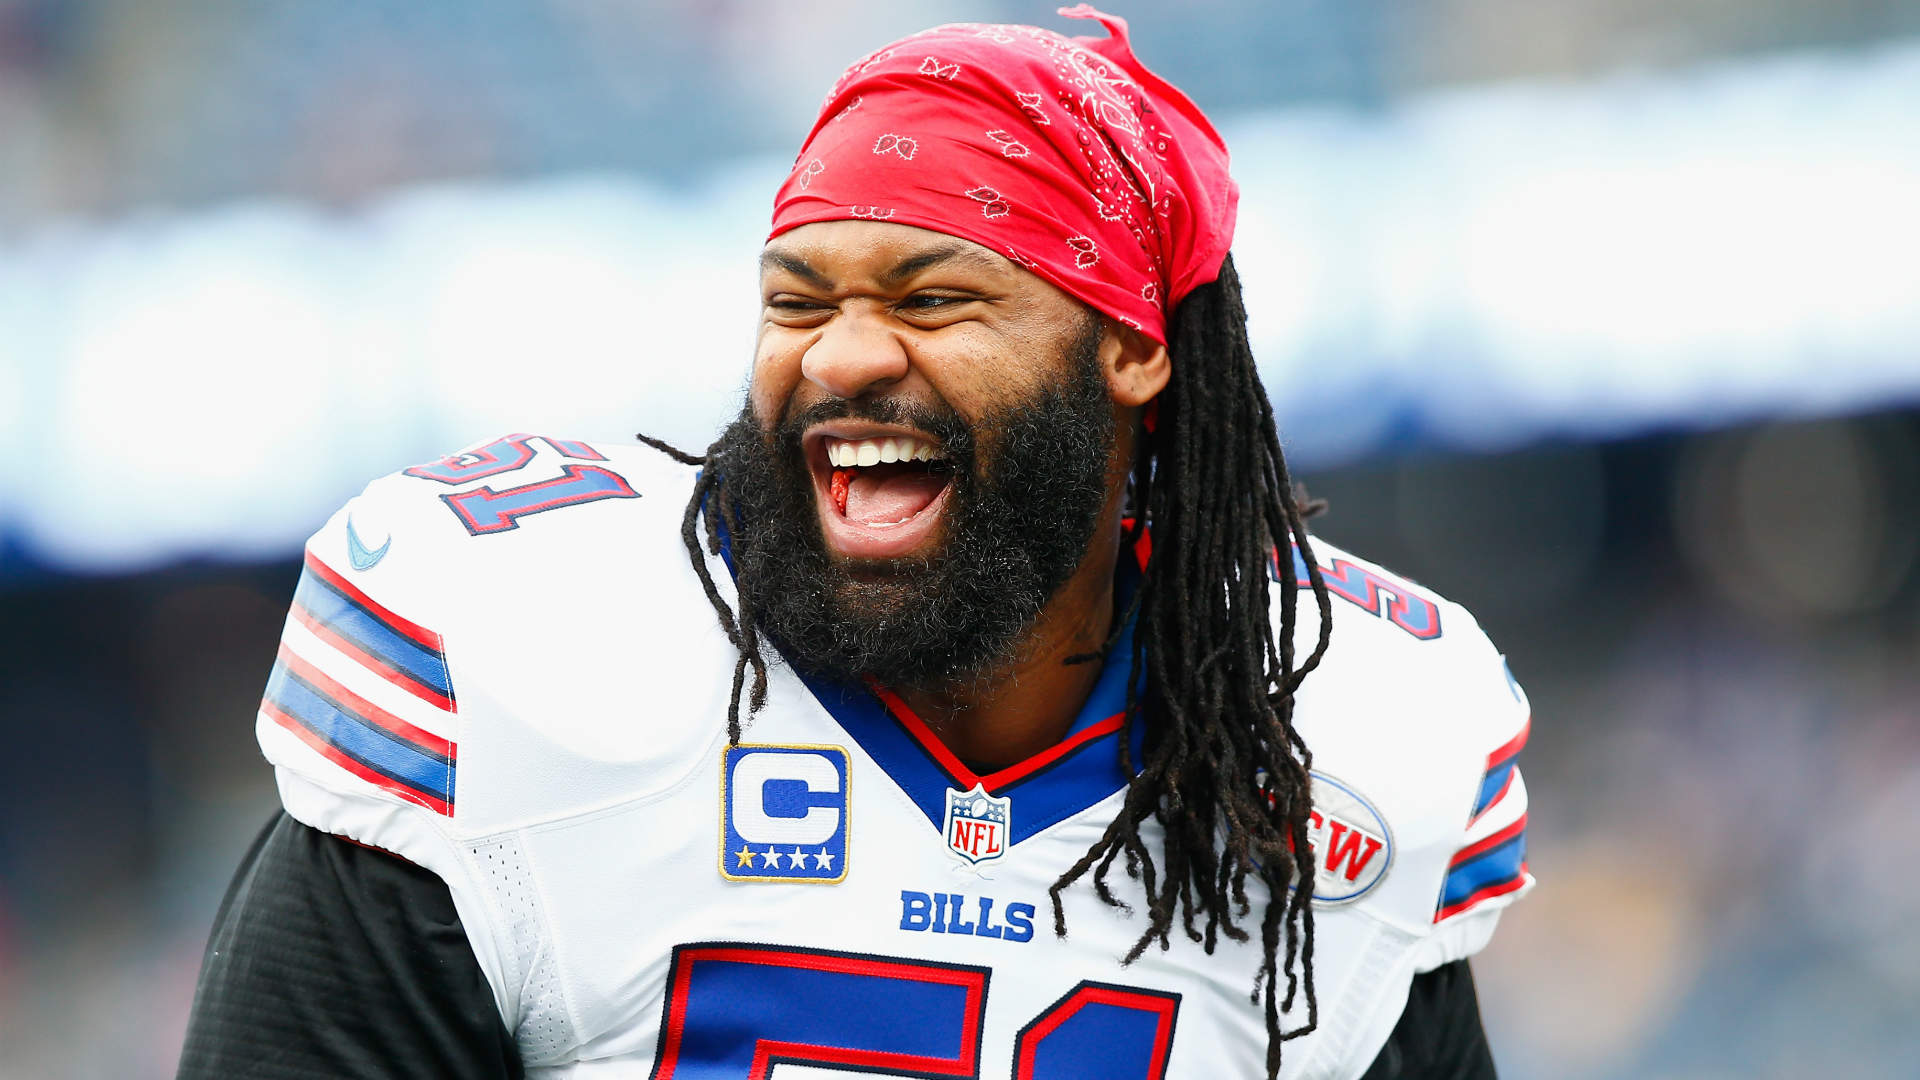 Brandon Spikes says he and Bill Belichick 'kissed and made up'